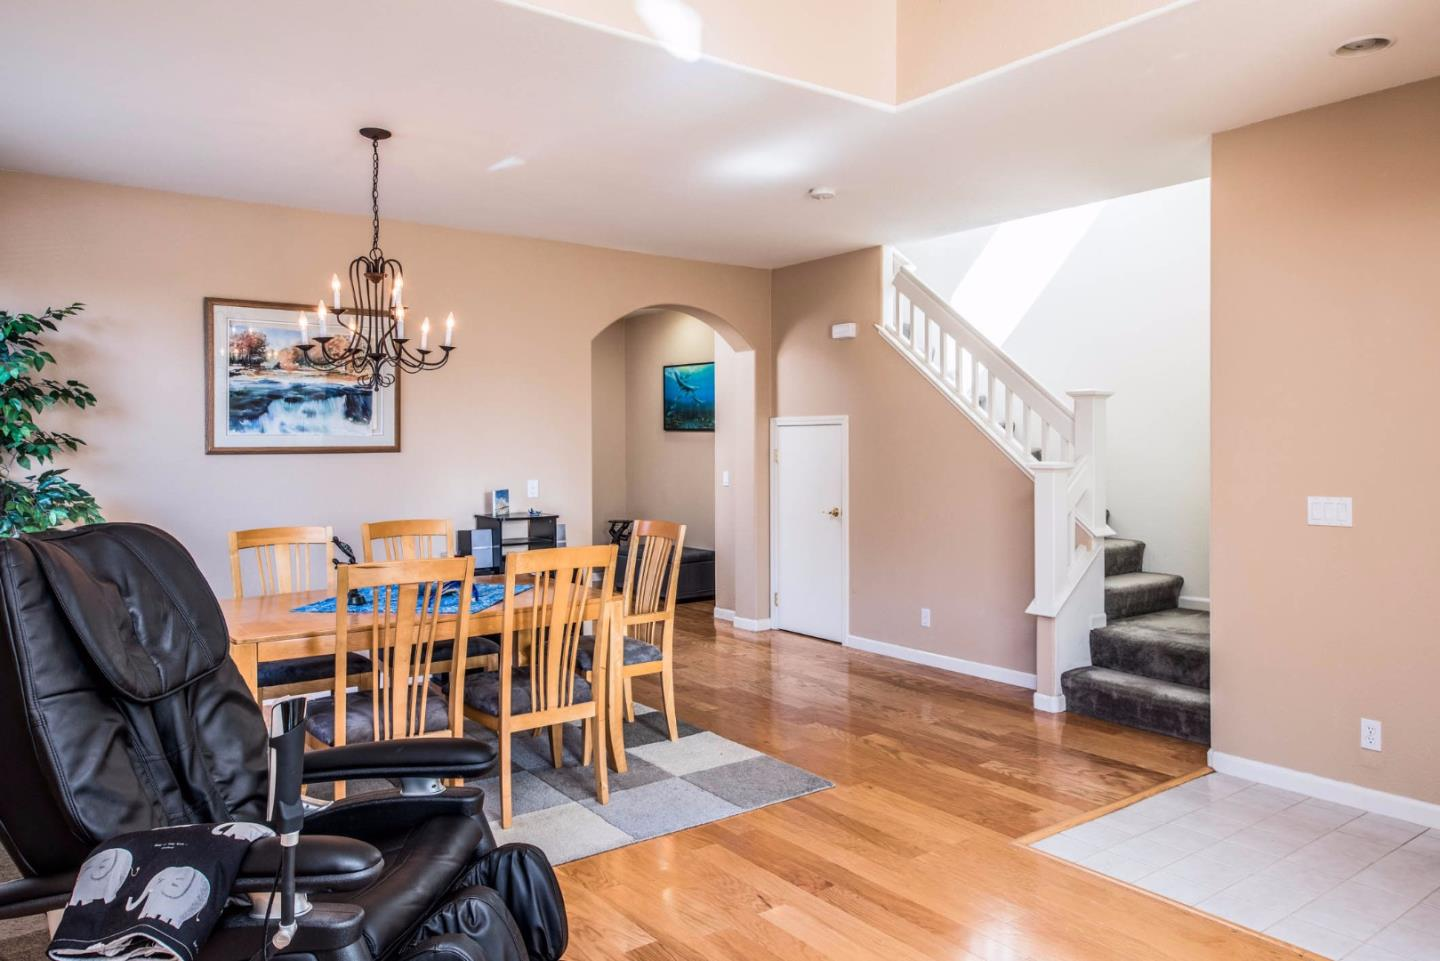 Additional photo for property listing at 4310 Peninsula Point Drive  Seaside, California 93955 United States